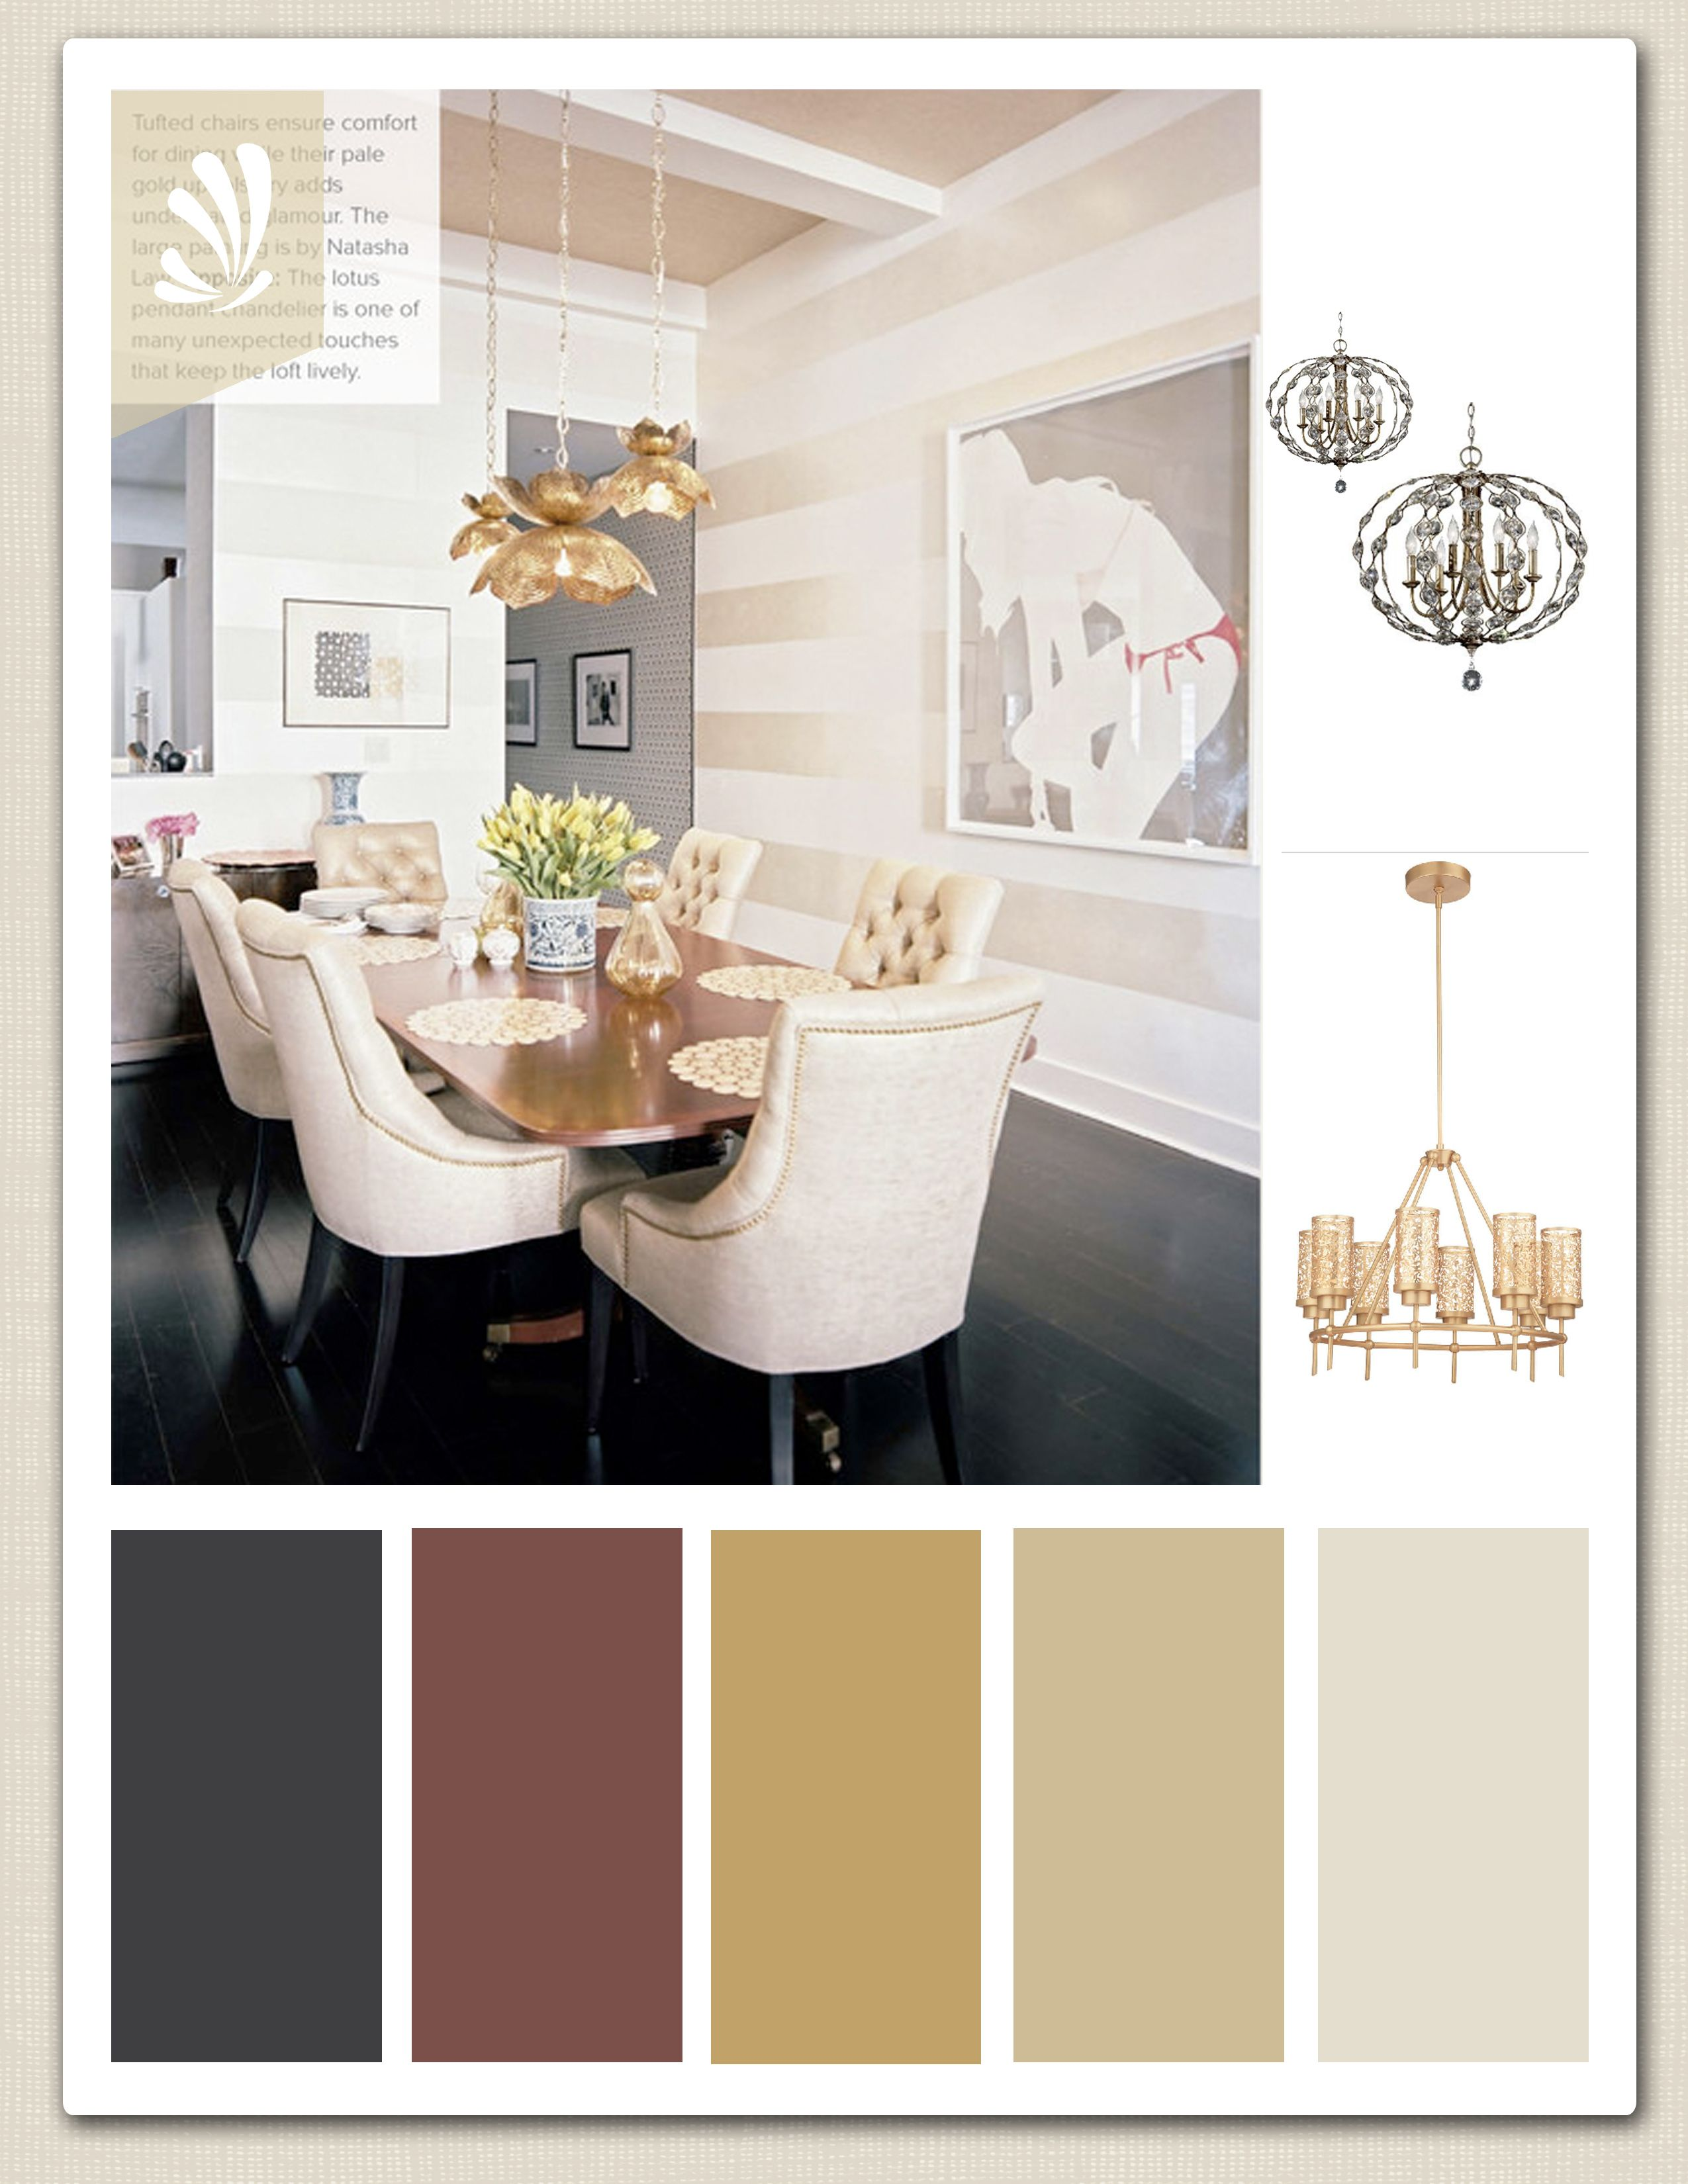 Pin By Lisa Perrone On Color Inspiration Dining Room Color